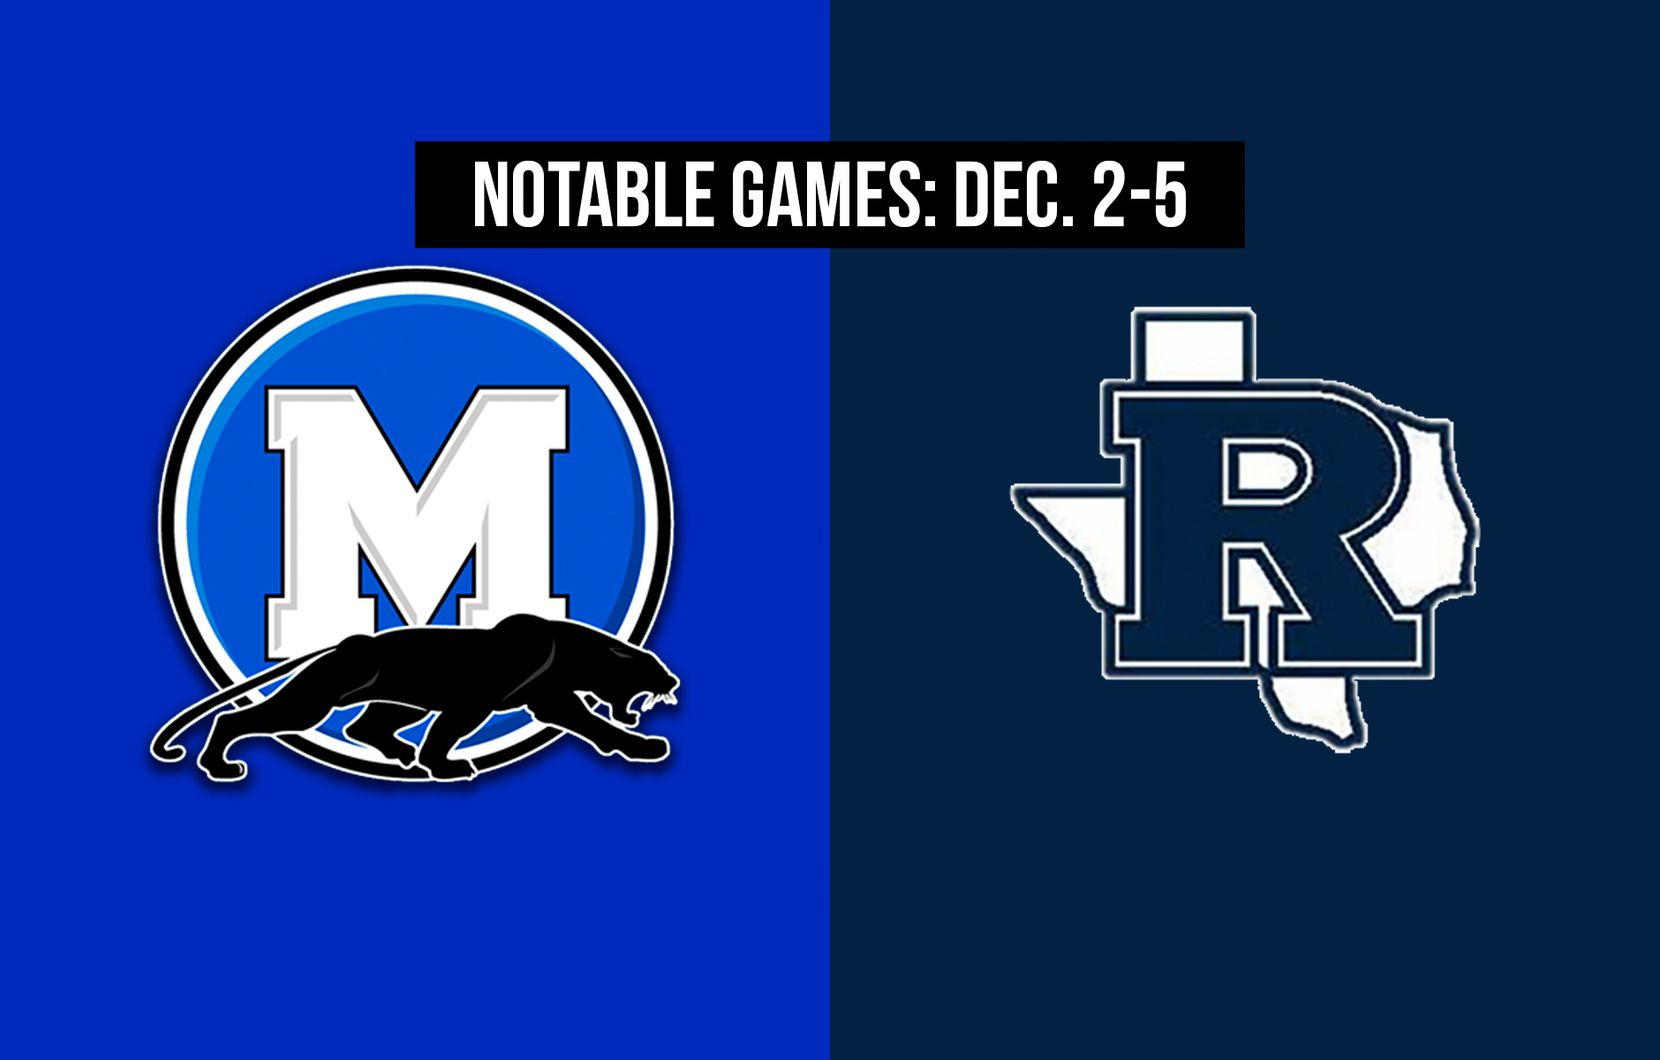 Notable games for the week of Dec. 2-5 of the 2020 season: Midlothian vs. Richland.